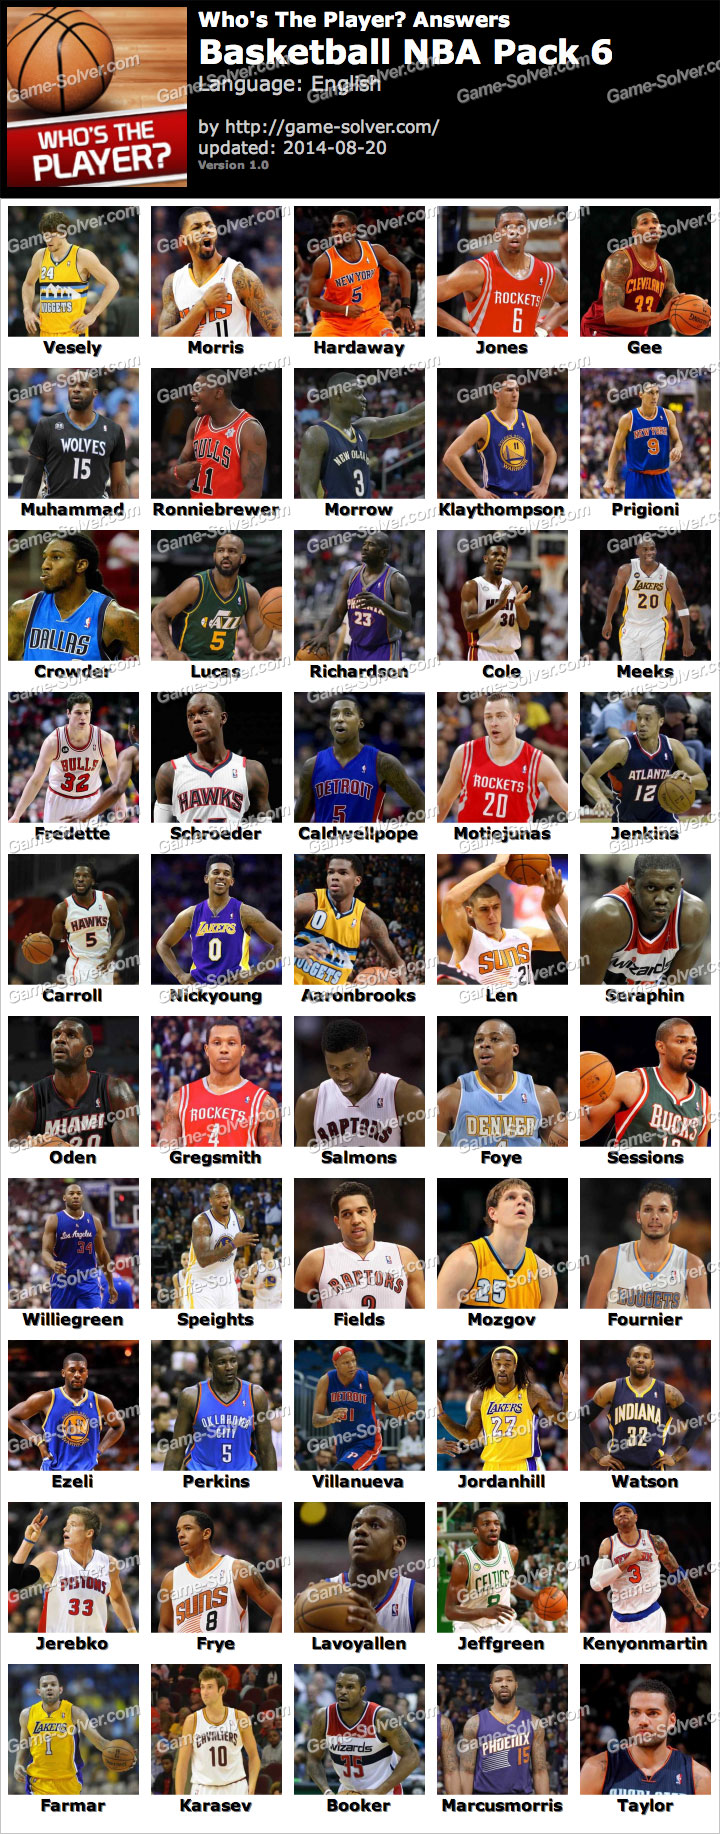 Who's The Player Basketball NBA Pack 6